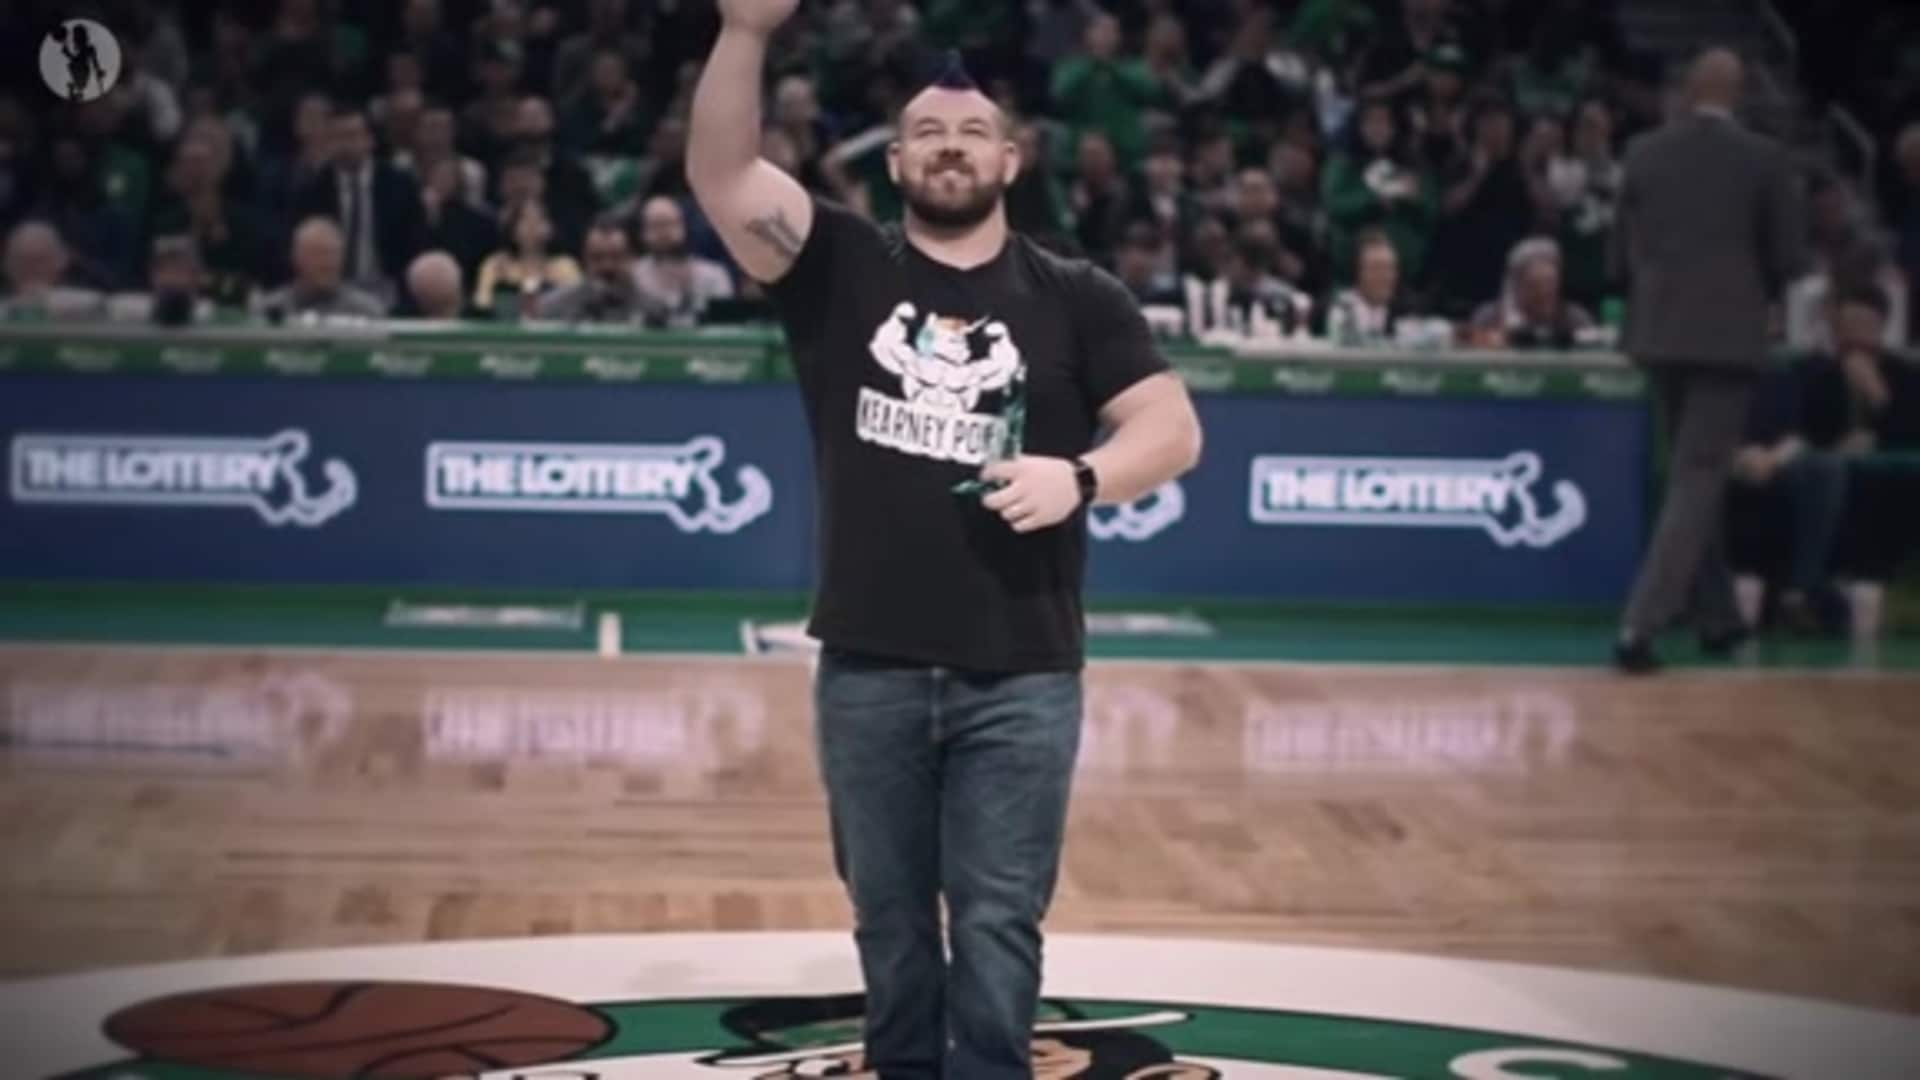 Celtics Honor LGBTQ+ Strongman Robert Kearney